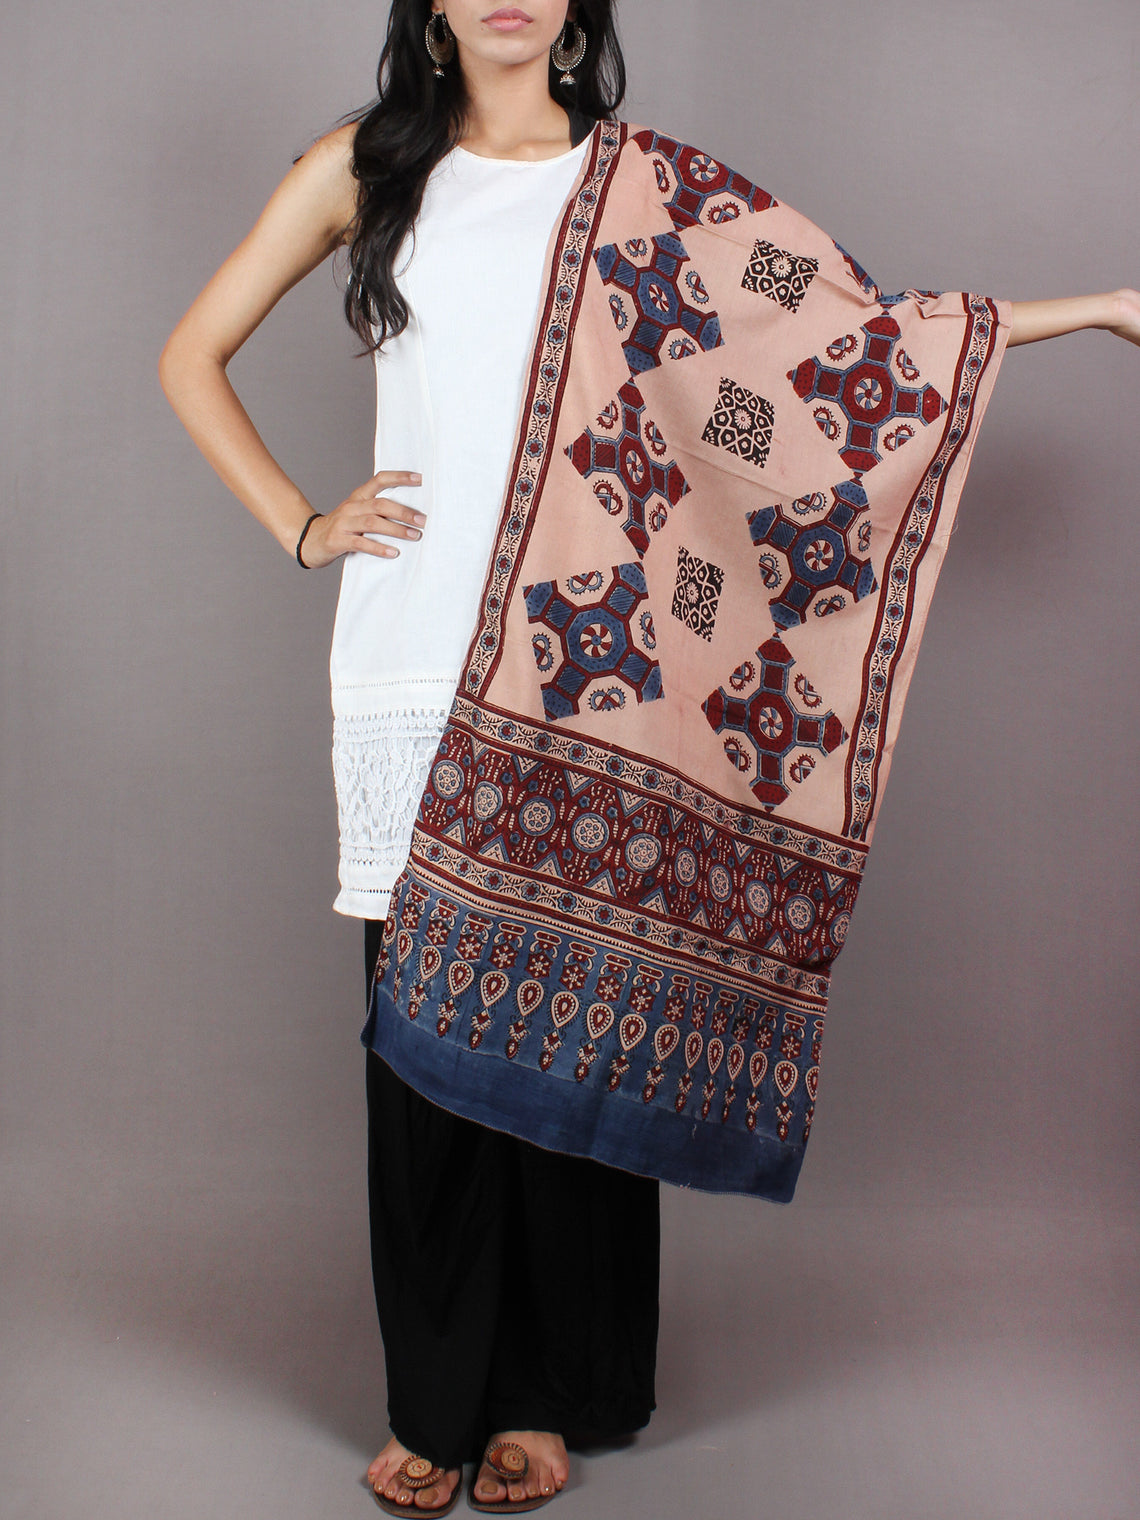 Salmon Pink Blue Maroon Mughal Nakashi Ajrakh Hand Block Printed Cotton Stole - S6317036